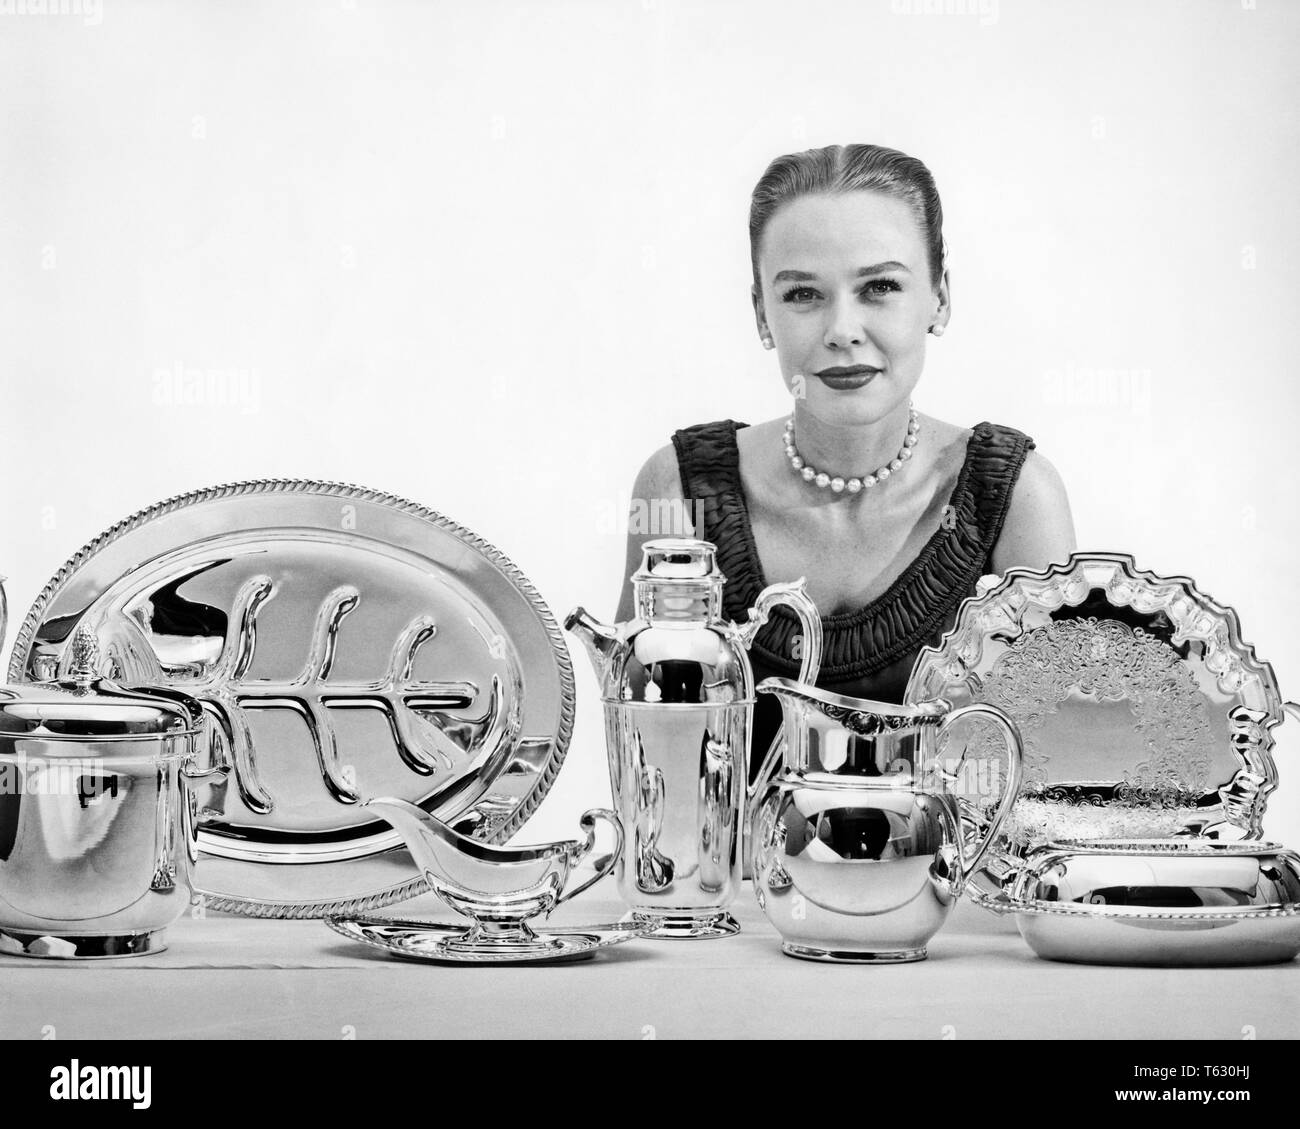 1950s ELEGANT WOMAN LOOKING AT CAMERA POSING BEHIND ARRAY OF STERLING AND SILVER PLATE SERVING PIECES - s3057 CLE003 HARS STUDIO SHOT PORTRAITS SHOWING GROWNUP HOME LIFE LADIES PERSONS GROWN-UP GIFTS PIECES B&W EYE CONTACT SELLING HEAD AND SHOULDERS PRESENTING STYLES CHOICE AUTHORITY OCCUPATIONS POSING STERLING SALESWOMAN STYLISH FASHIONS MID-ADULT MID-ADULT WOMAN PEOPLE ADULTS POSE POSED YOUNGSTER ARRAY BLACK AND WHITE CAUCASIAN ETHNICITY OLD FASHIONED - Stock Image